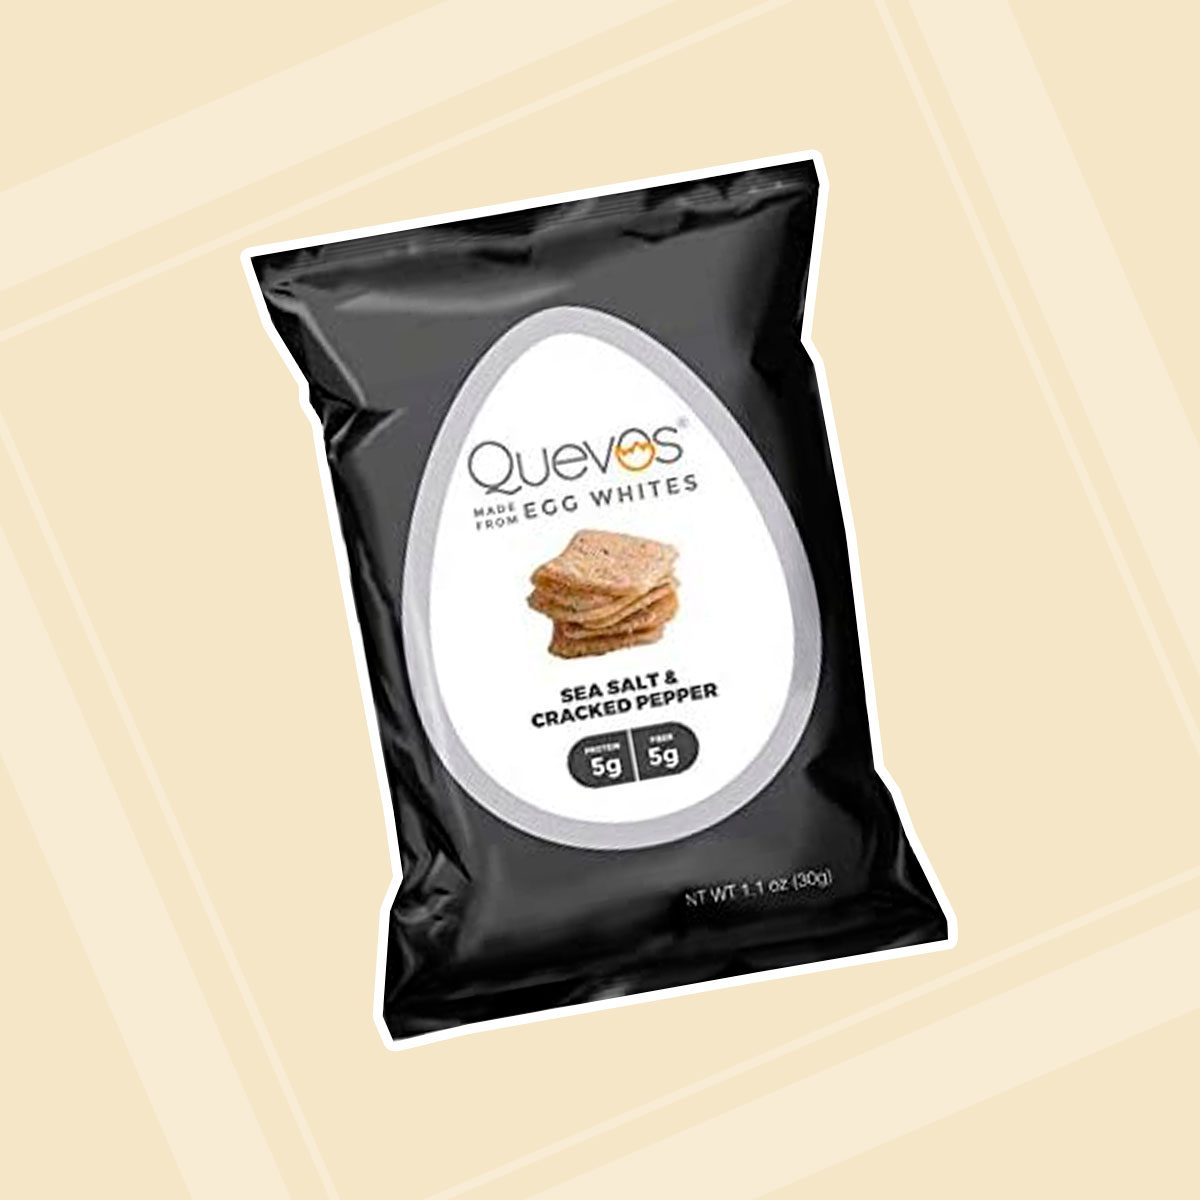 12 Pack of Quevos Sea Salt & Cracked Pepper - High Protein Egg White Chips